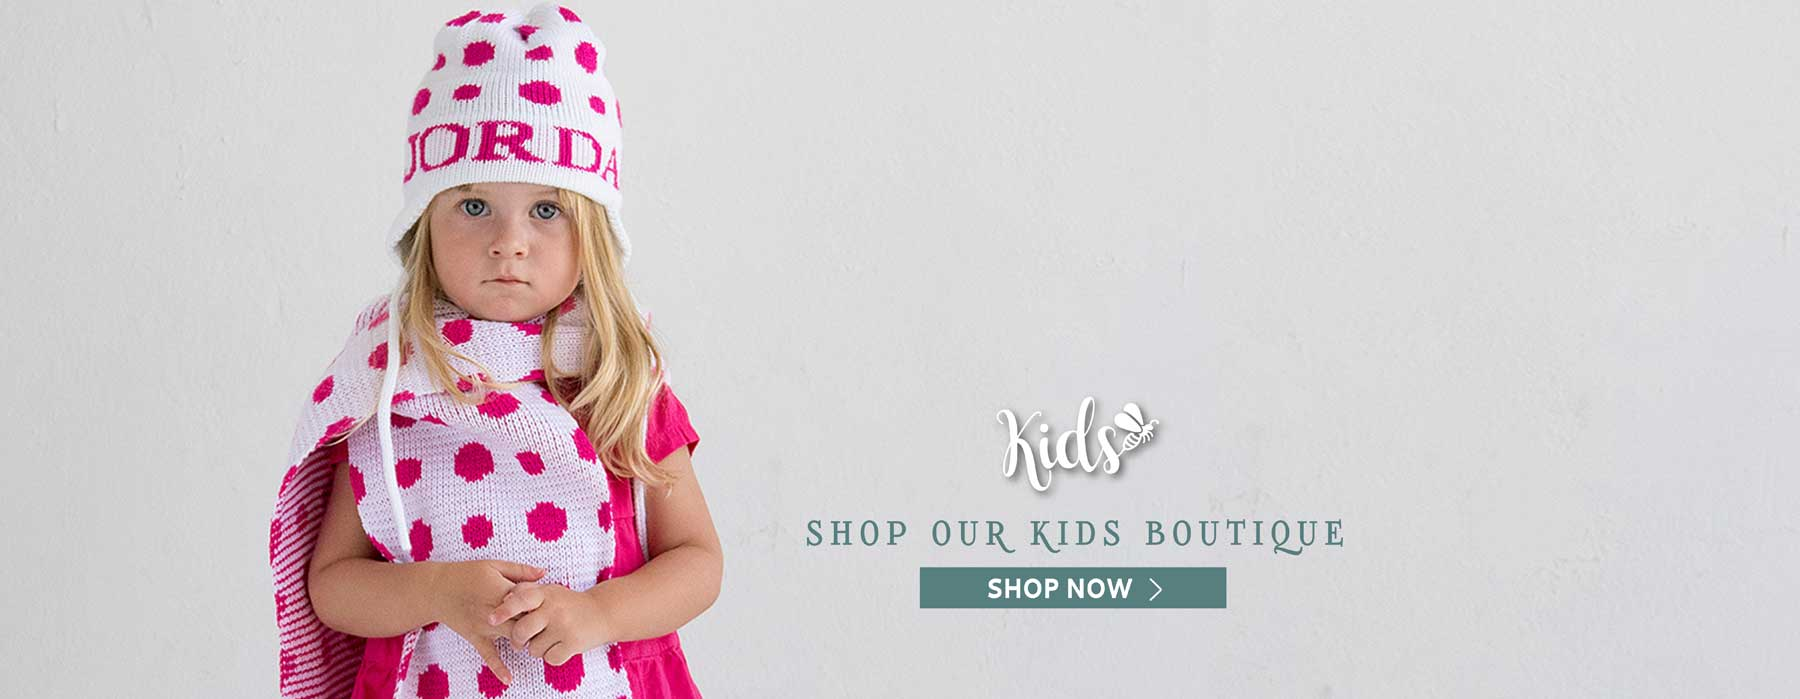 Kids - Shop Our Kids Boutique